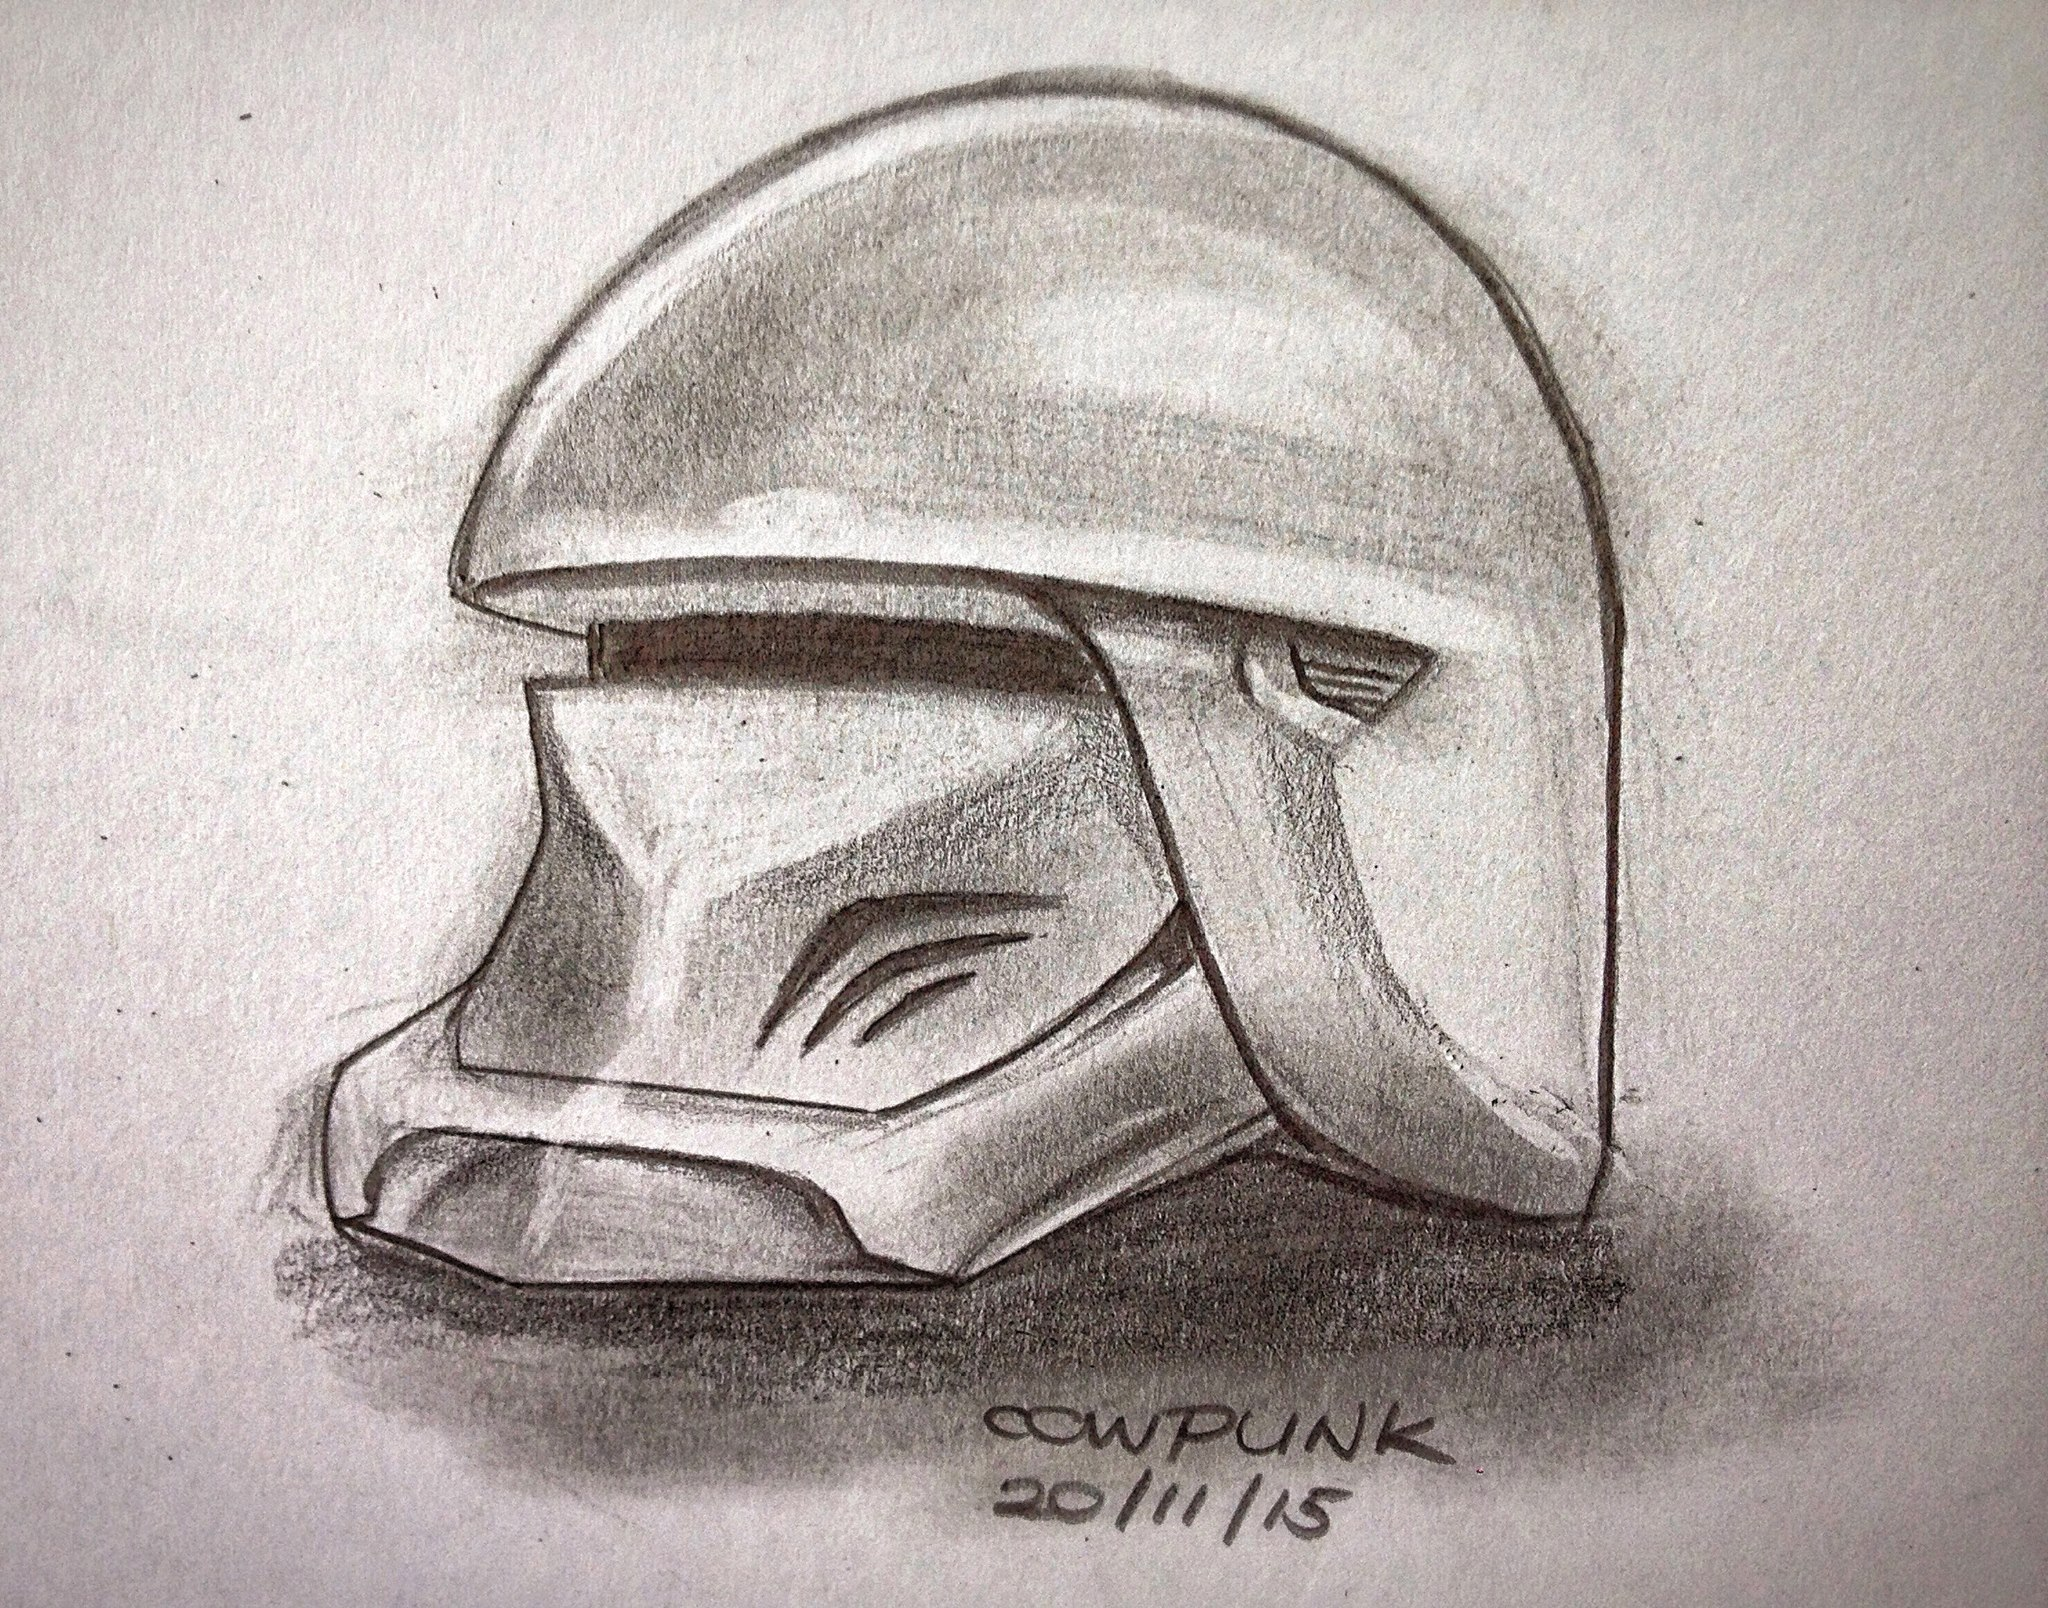 Storm Trooper Helmet Design